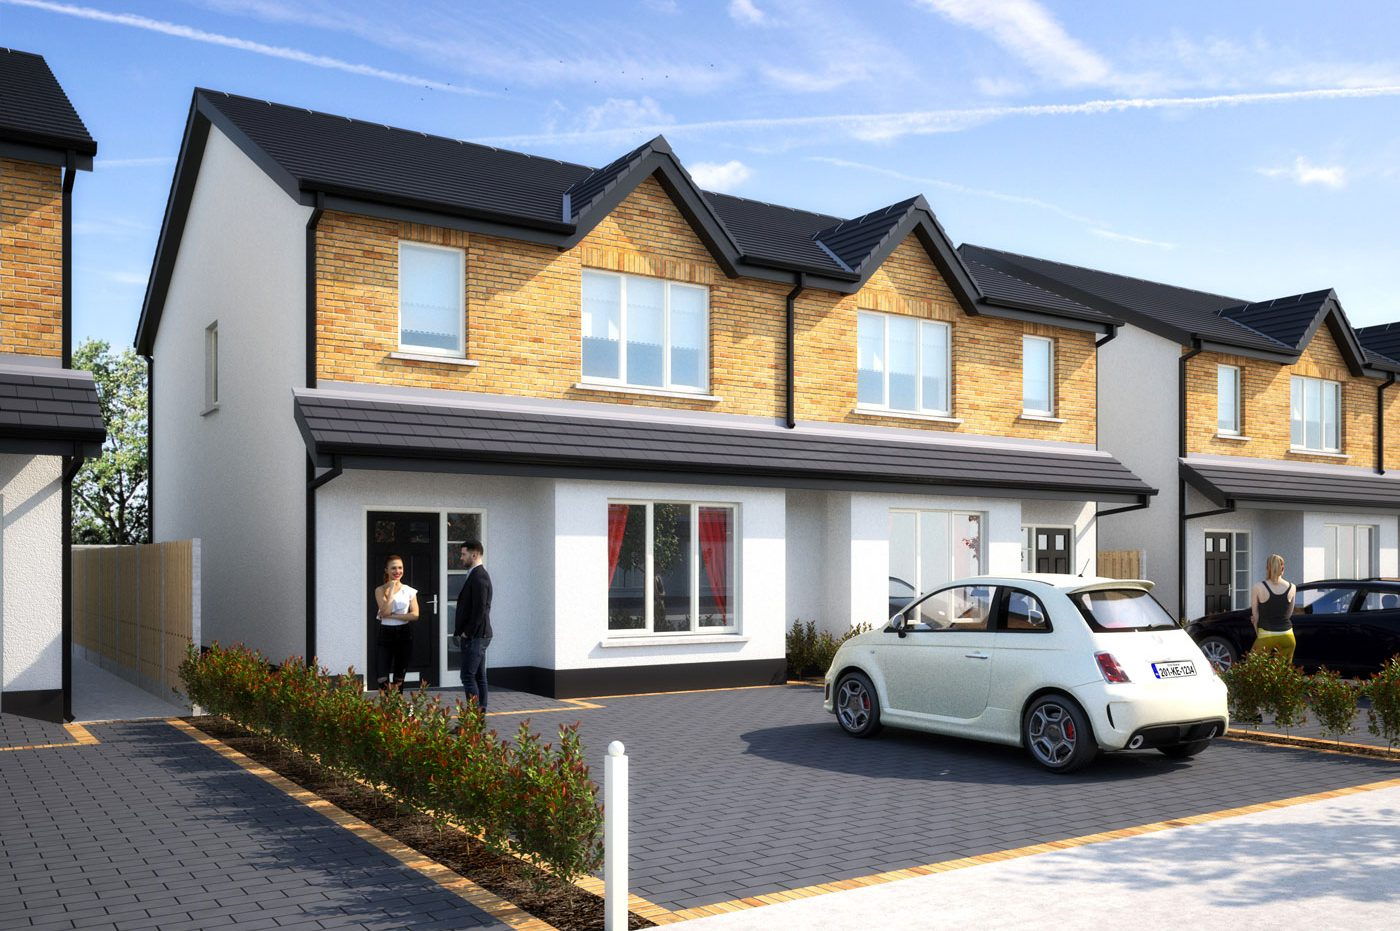 New 3 bedroom semi-detached Derrinturn Co. Kildare